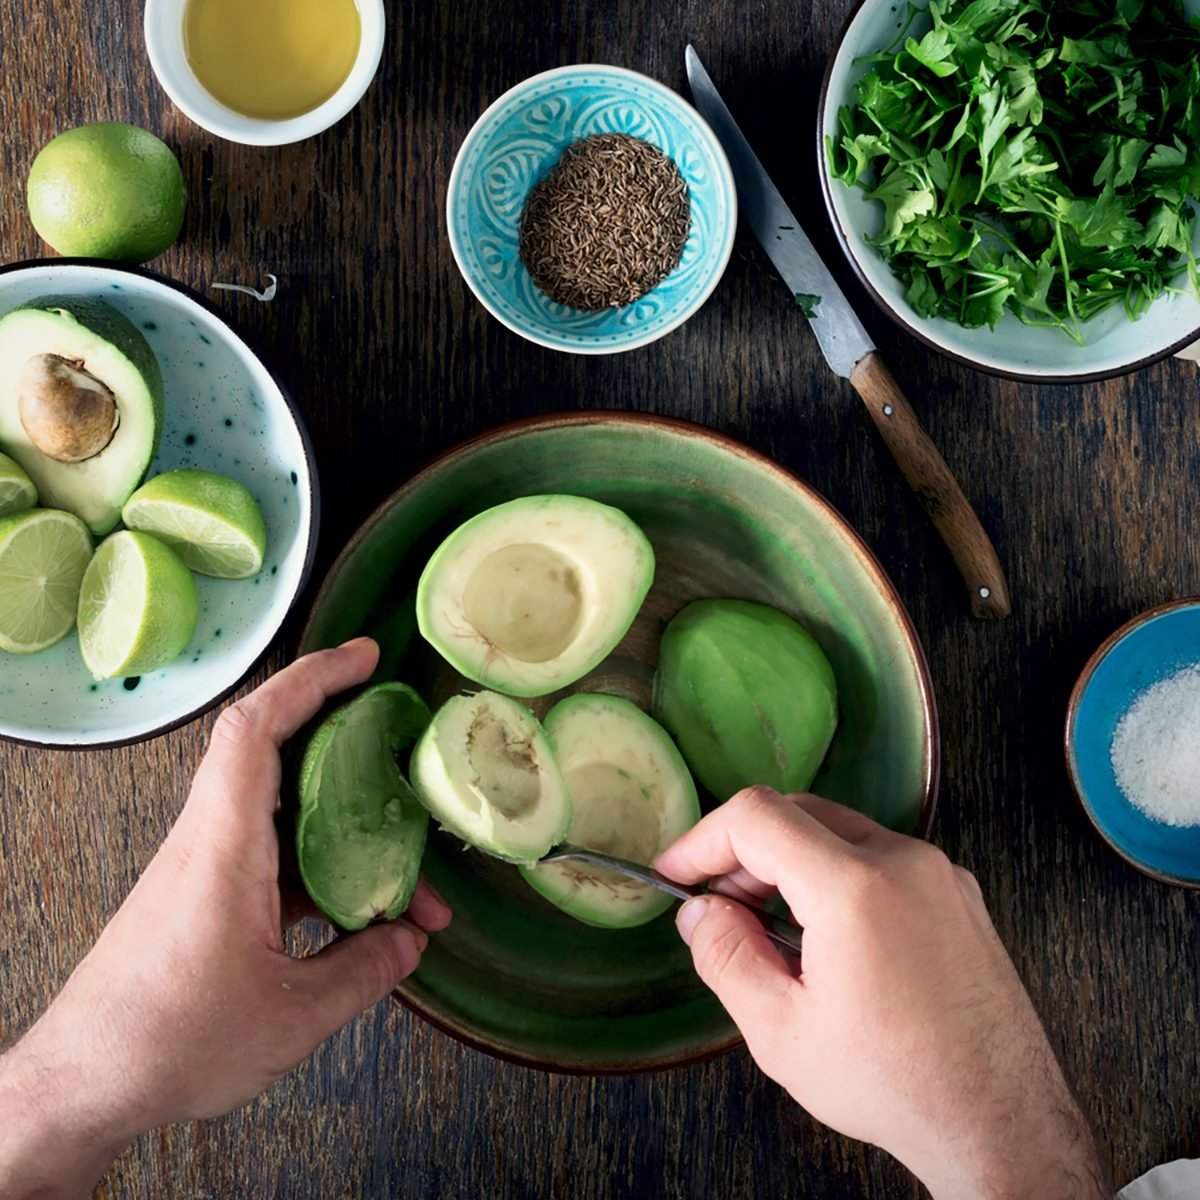 Cooking of Mexican guacamole sauce. Man preparing Mexican sauce guacamole on rustic wooden table